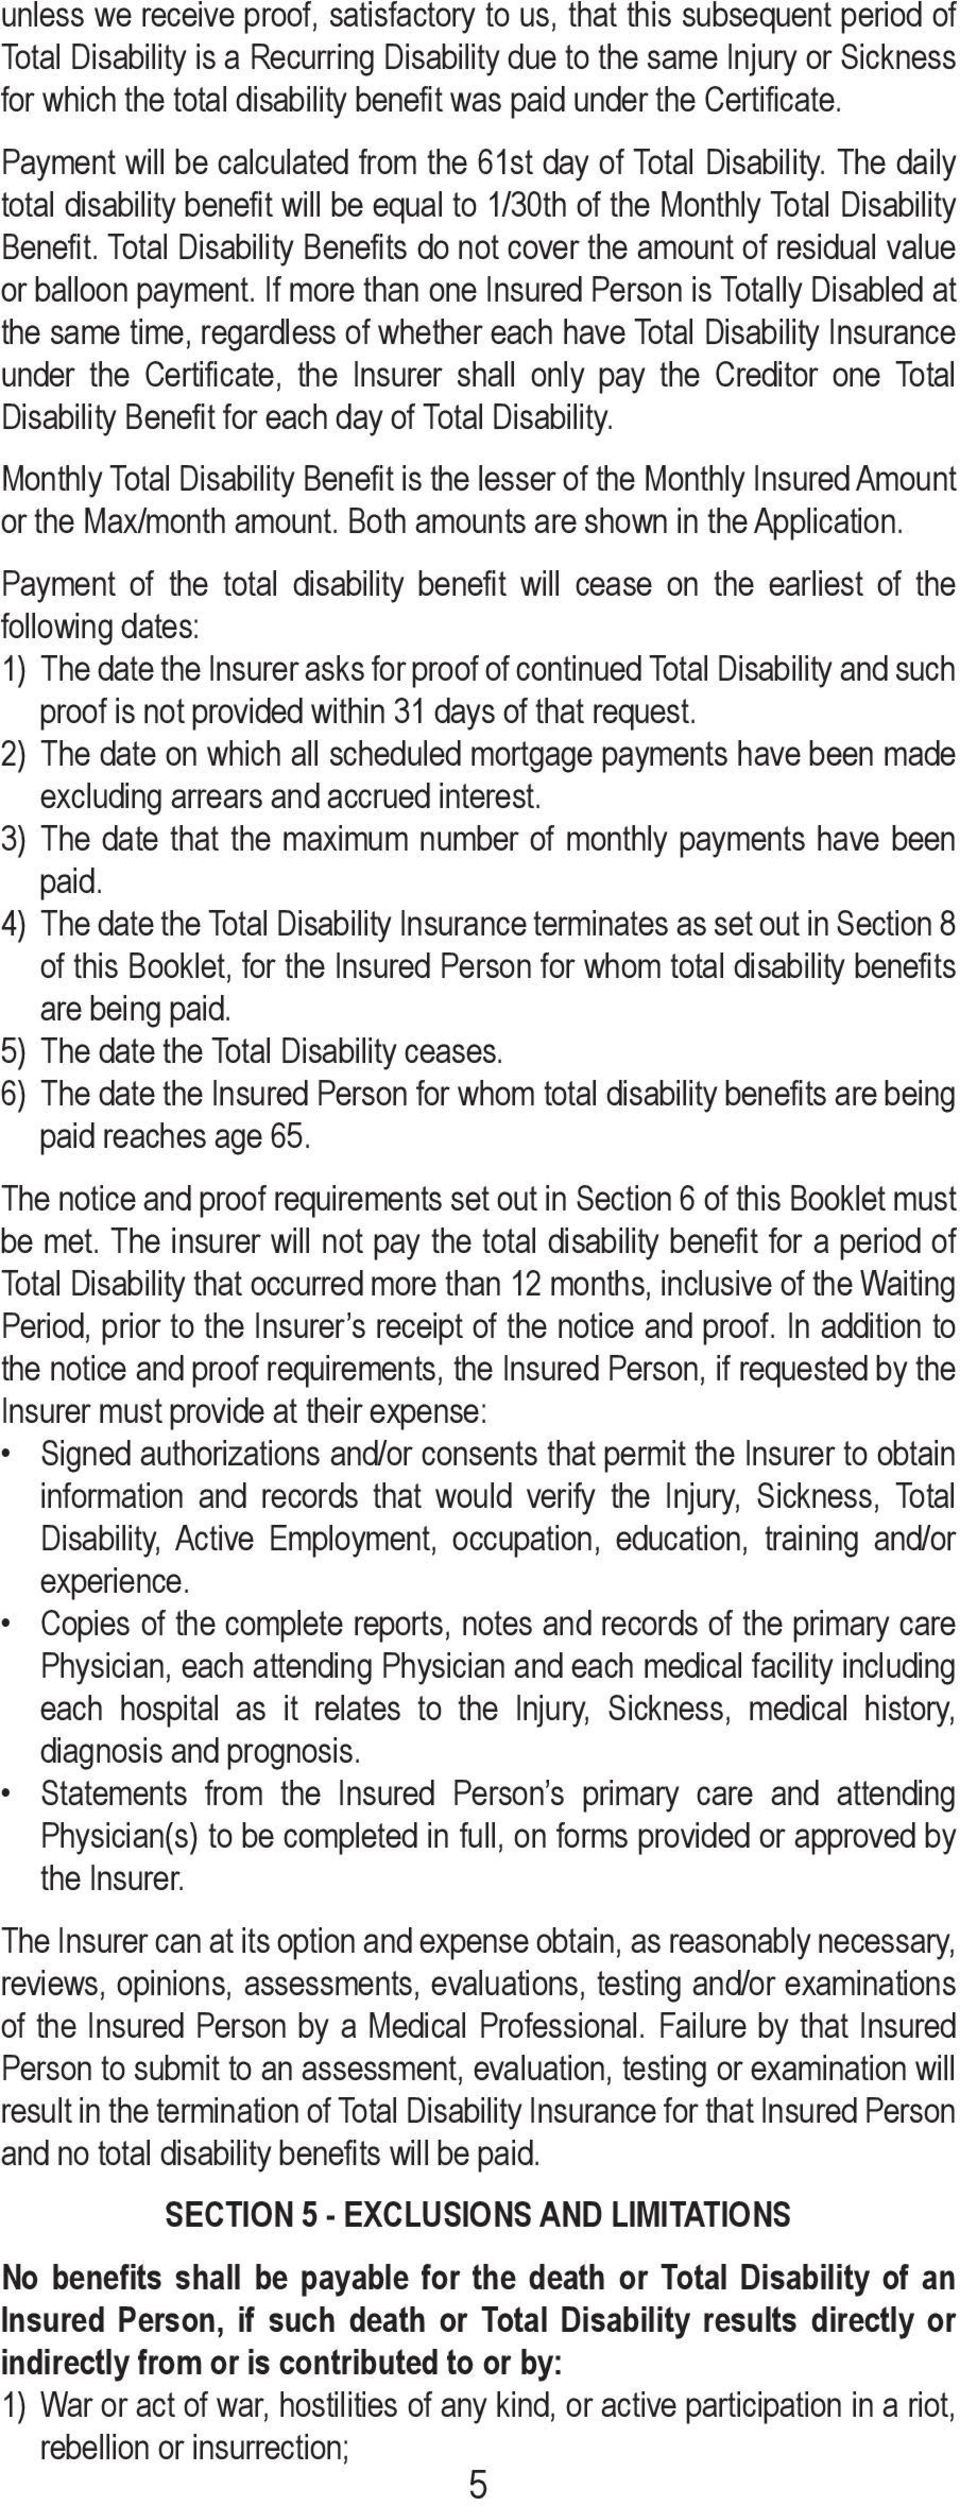 Total Disability Benefits do not cover the amount of residual value or balloon payment.